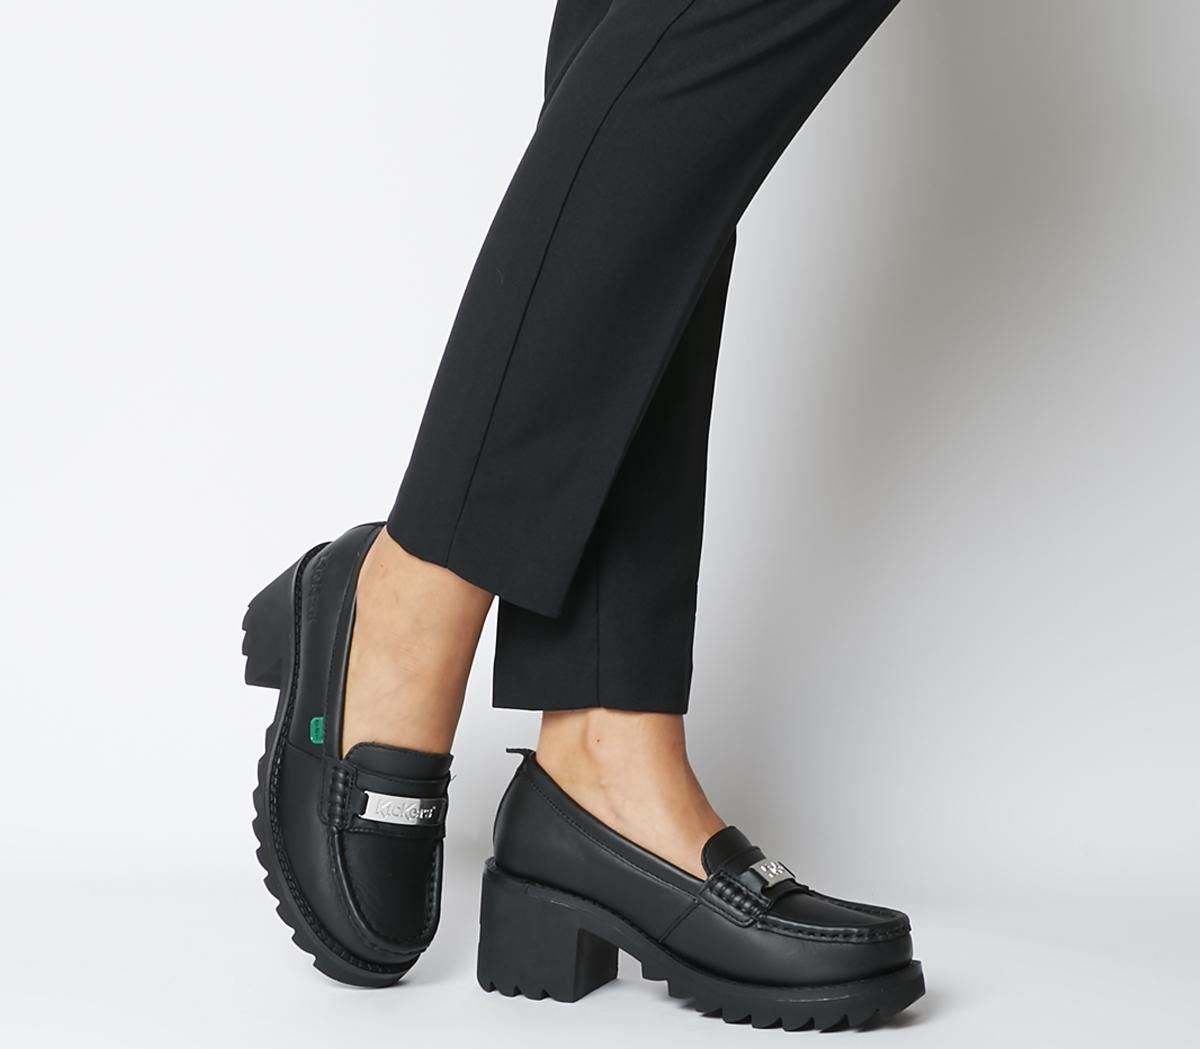 Flats | Loafers, Kickers shoes